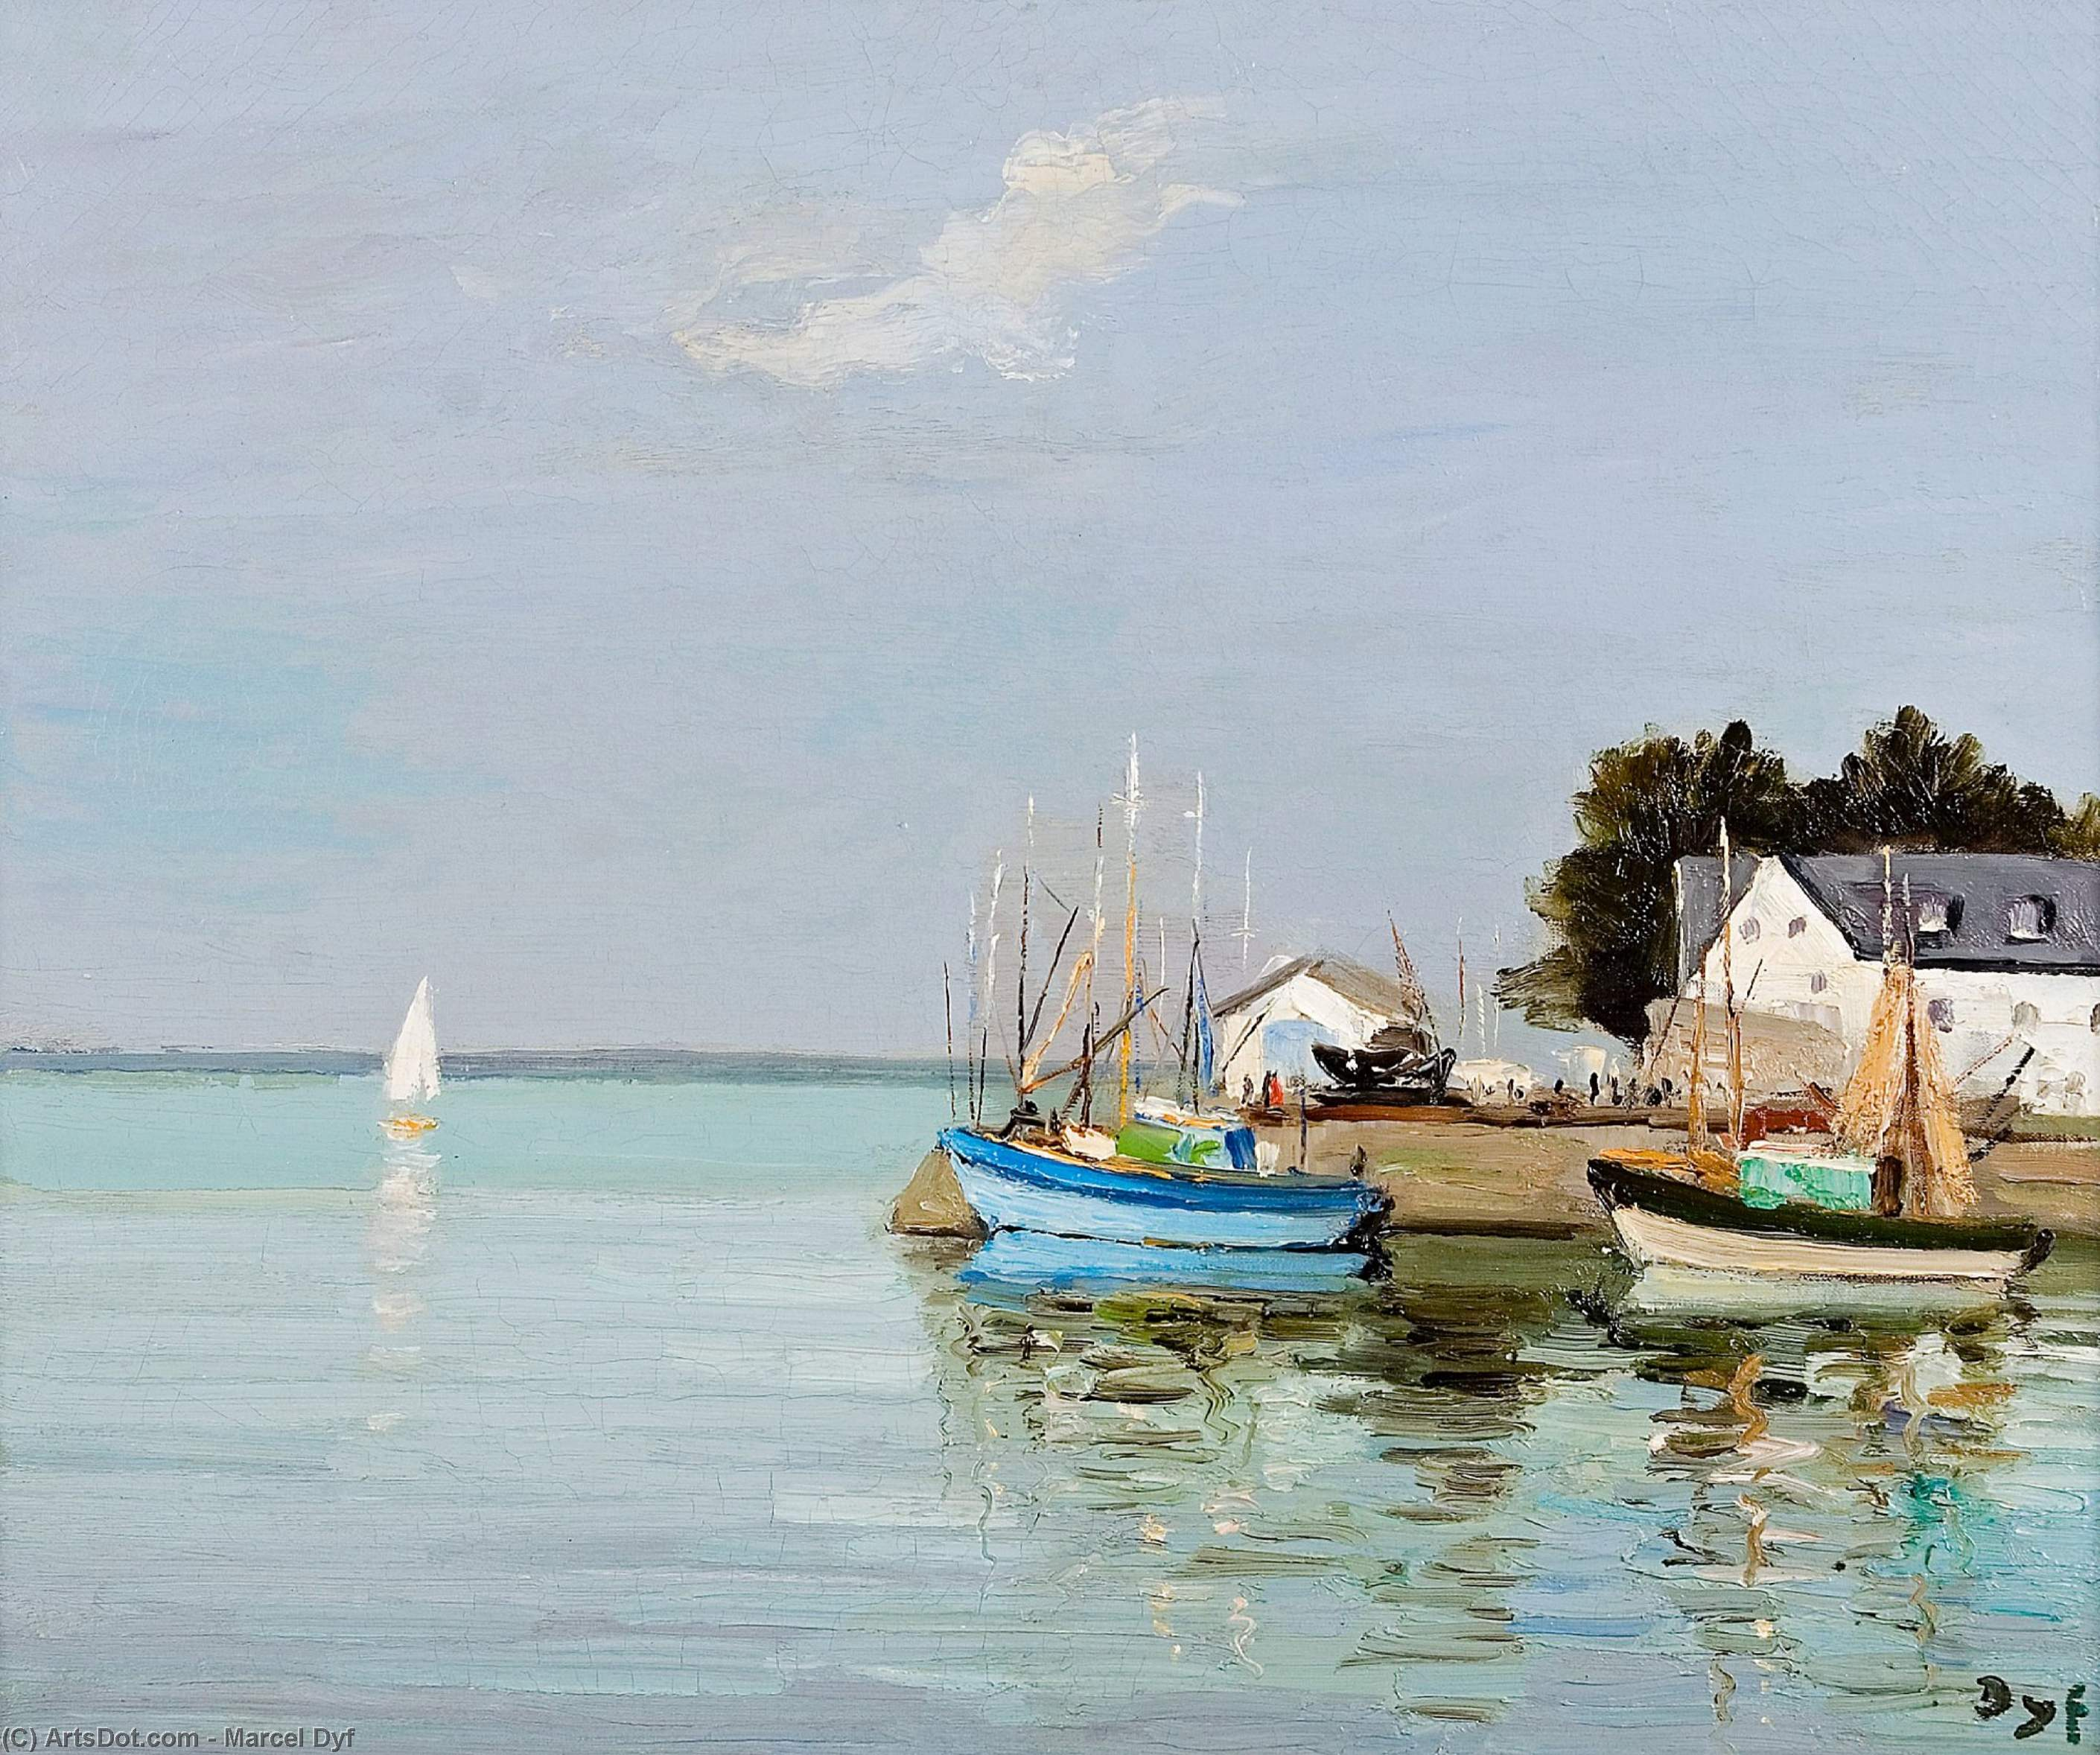 Loctudy, finistere, brittany, (1970) by Marcel Dyf (1899-1985, France)